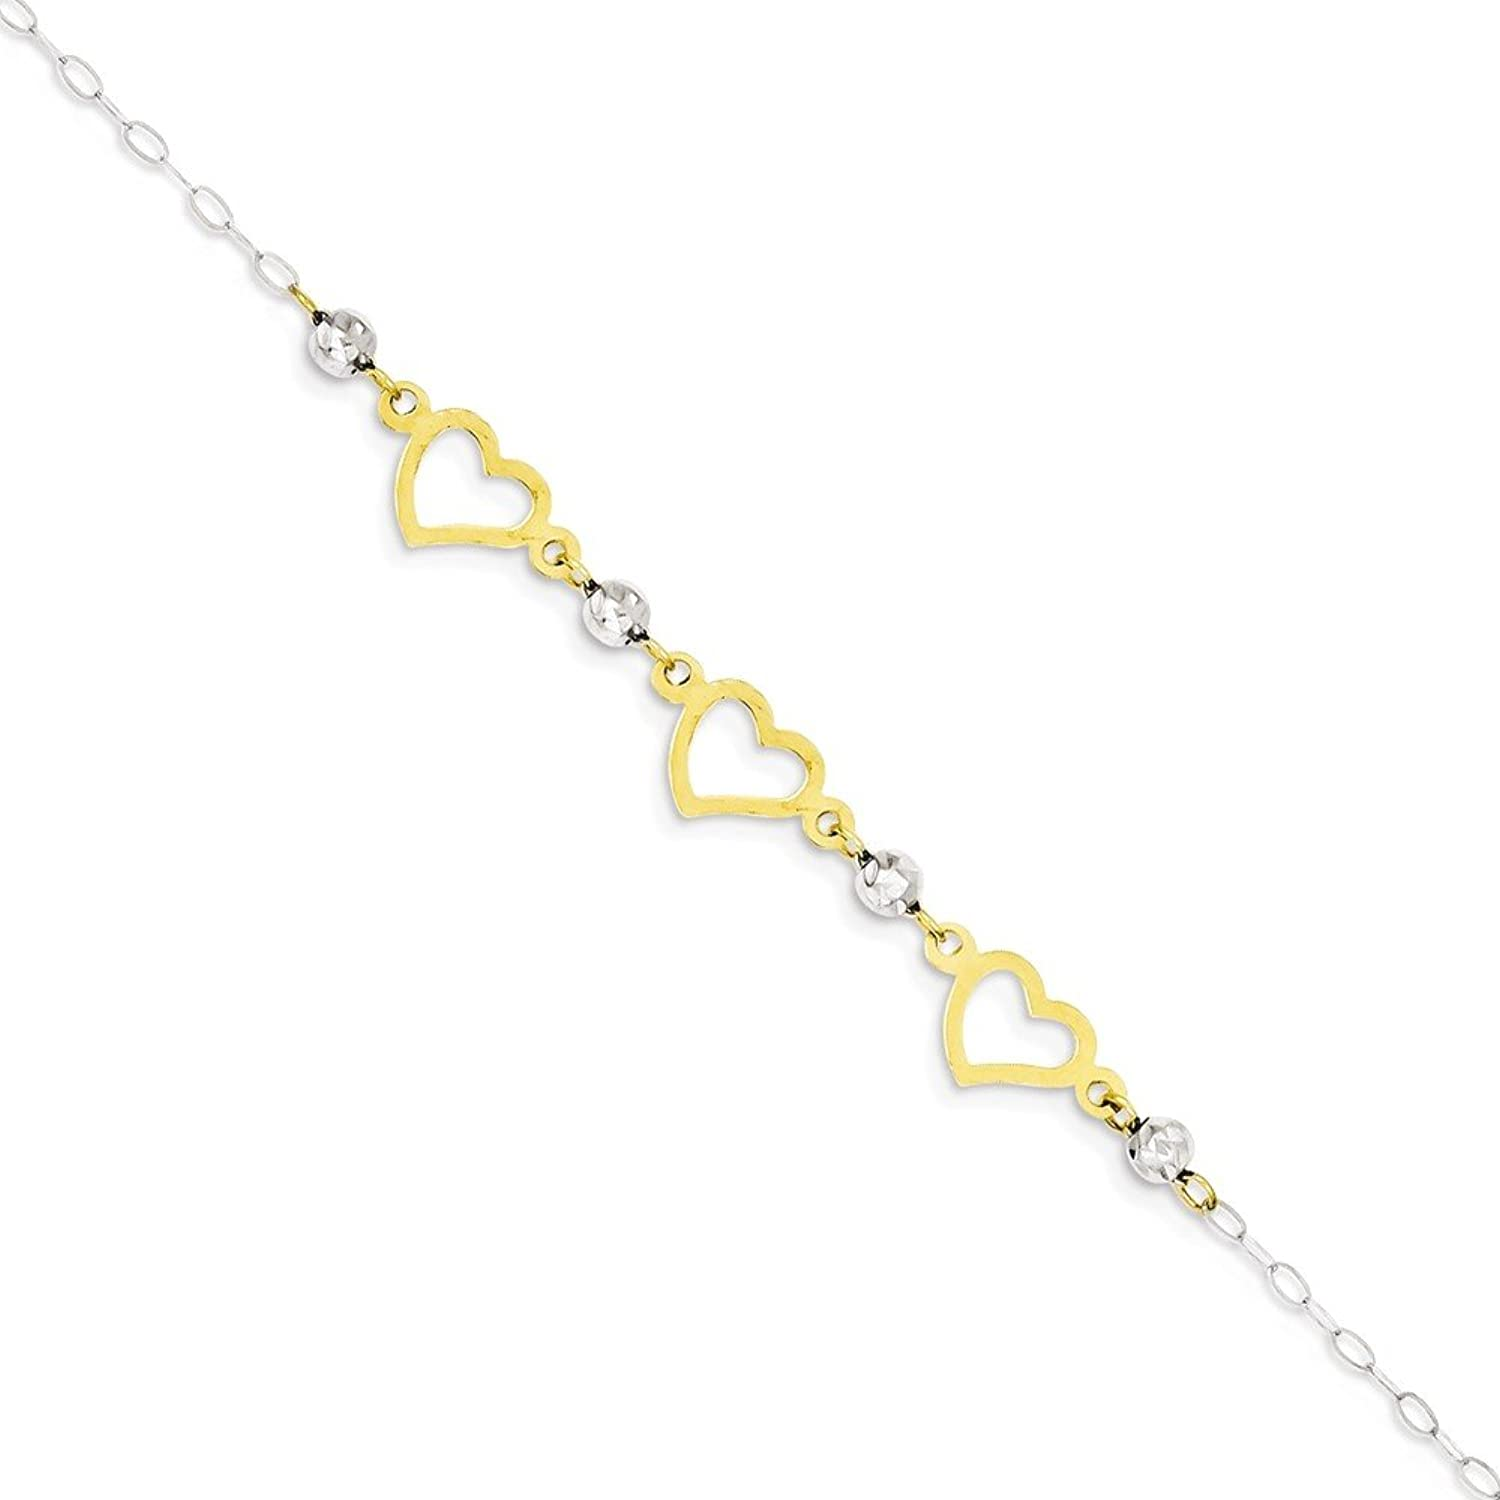 IceCarats Designer Jewelry 14K Two-Tone Oval Link Diamond Cut Beads And Heart Bracelet In 7.5 Inch